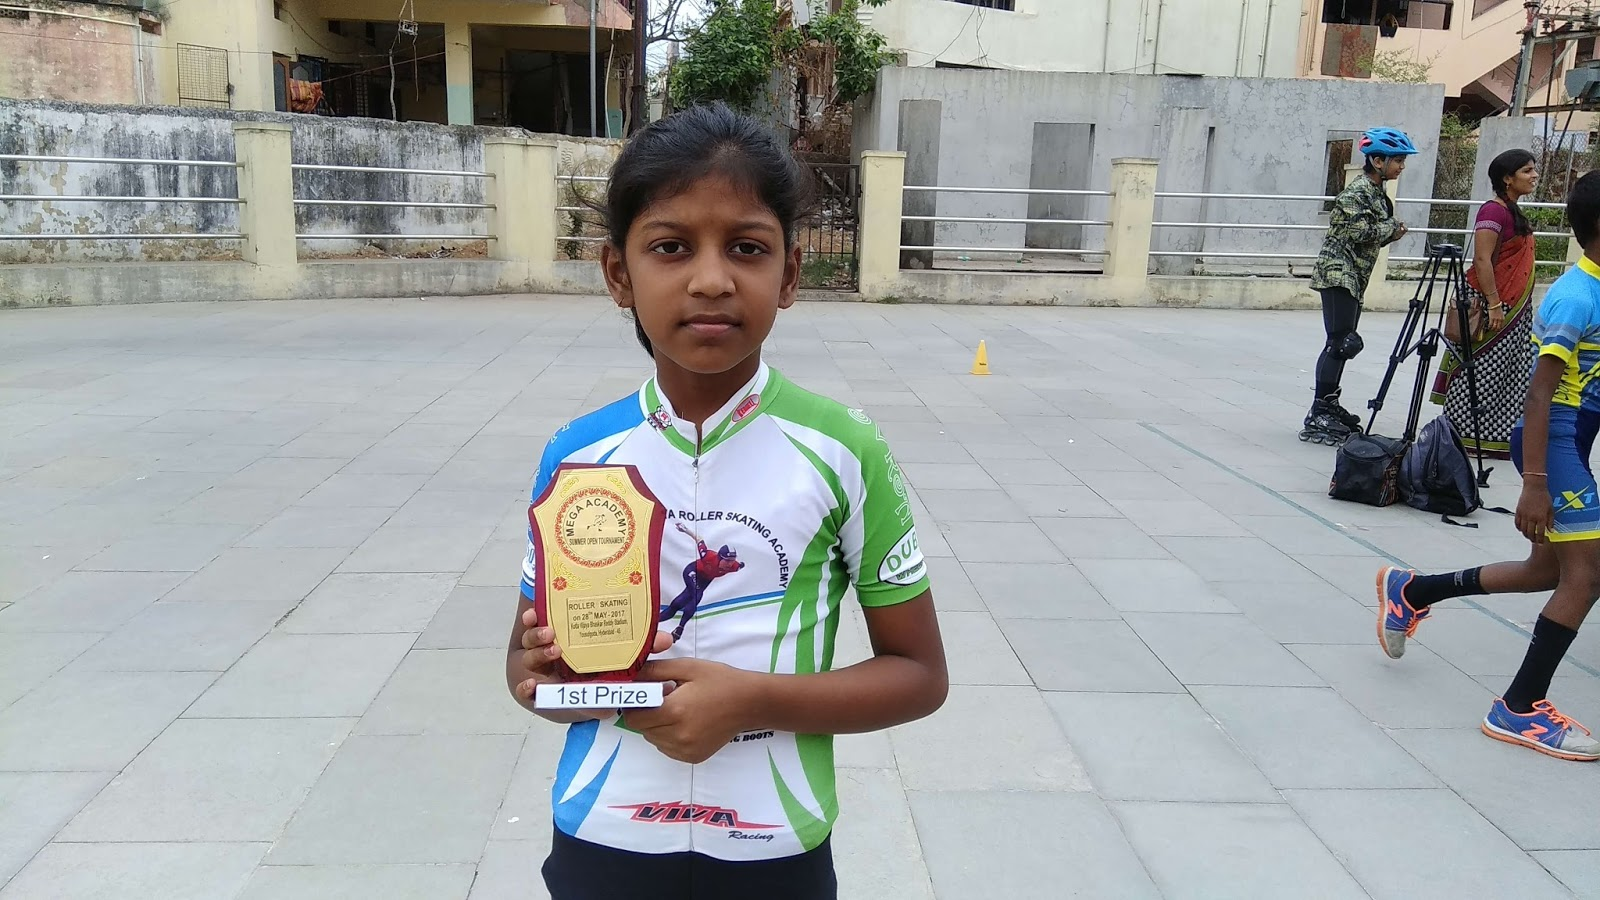 Roller shoes in hyderabad - Quad Inline Skating Winners Hyderabad